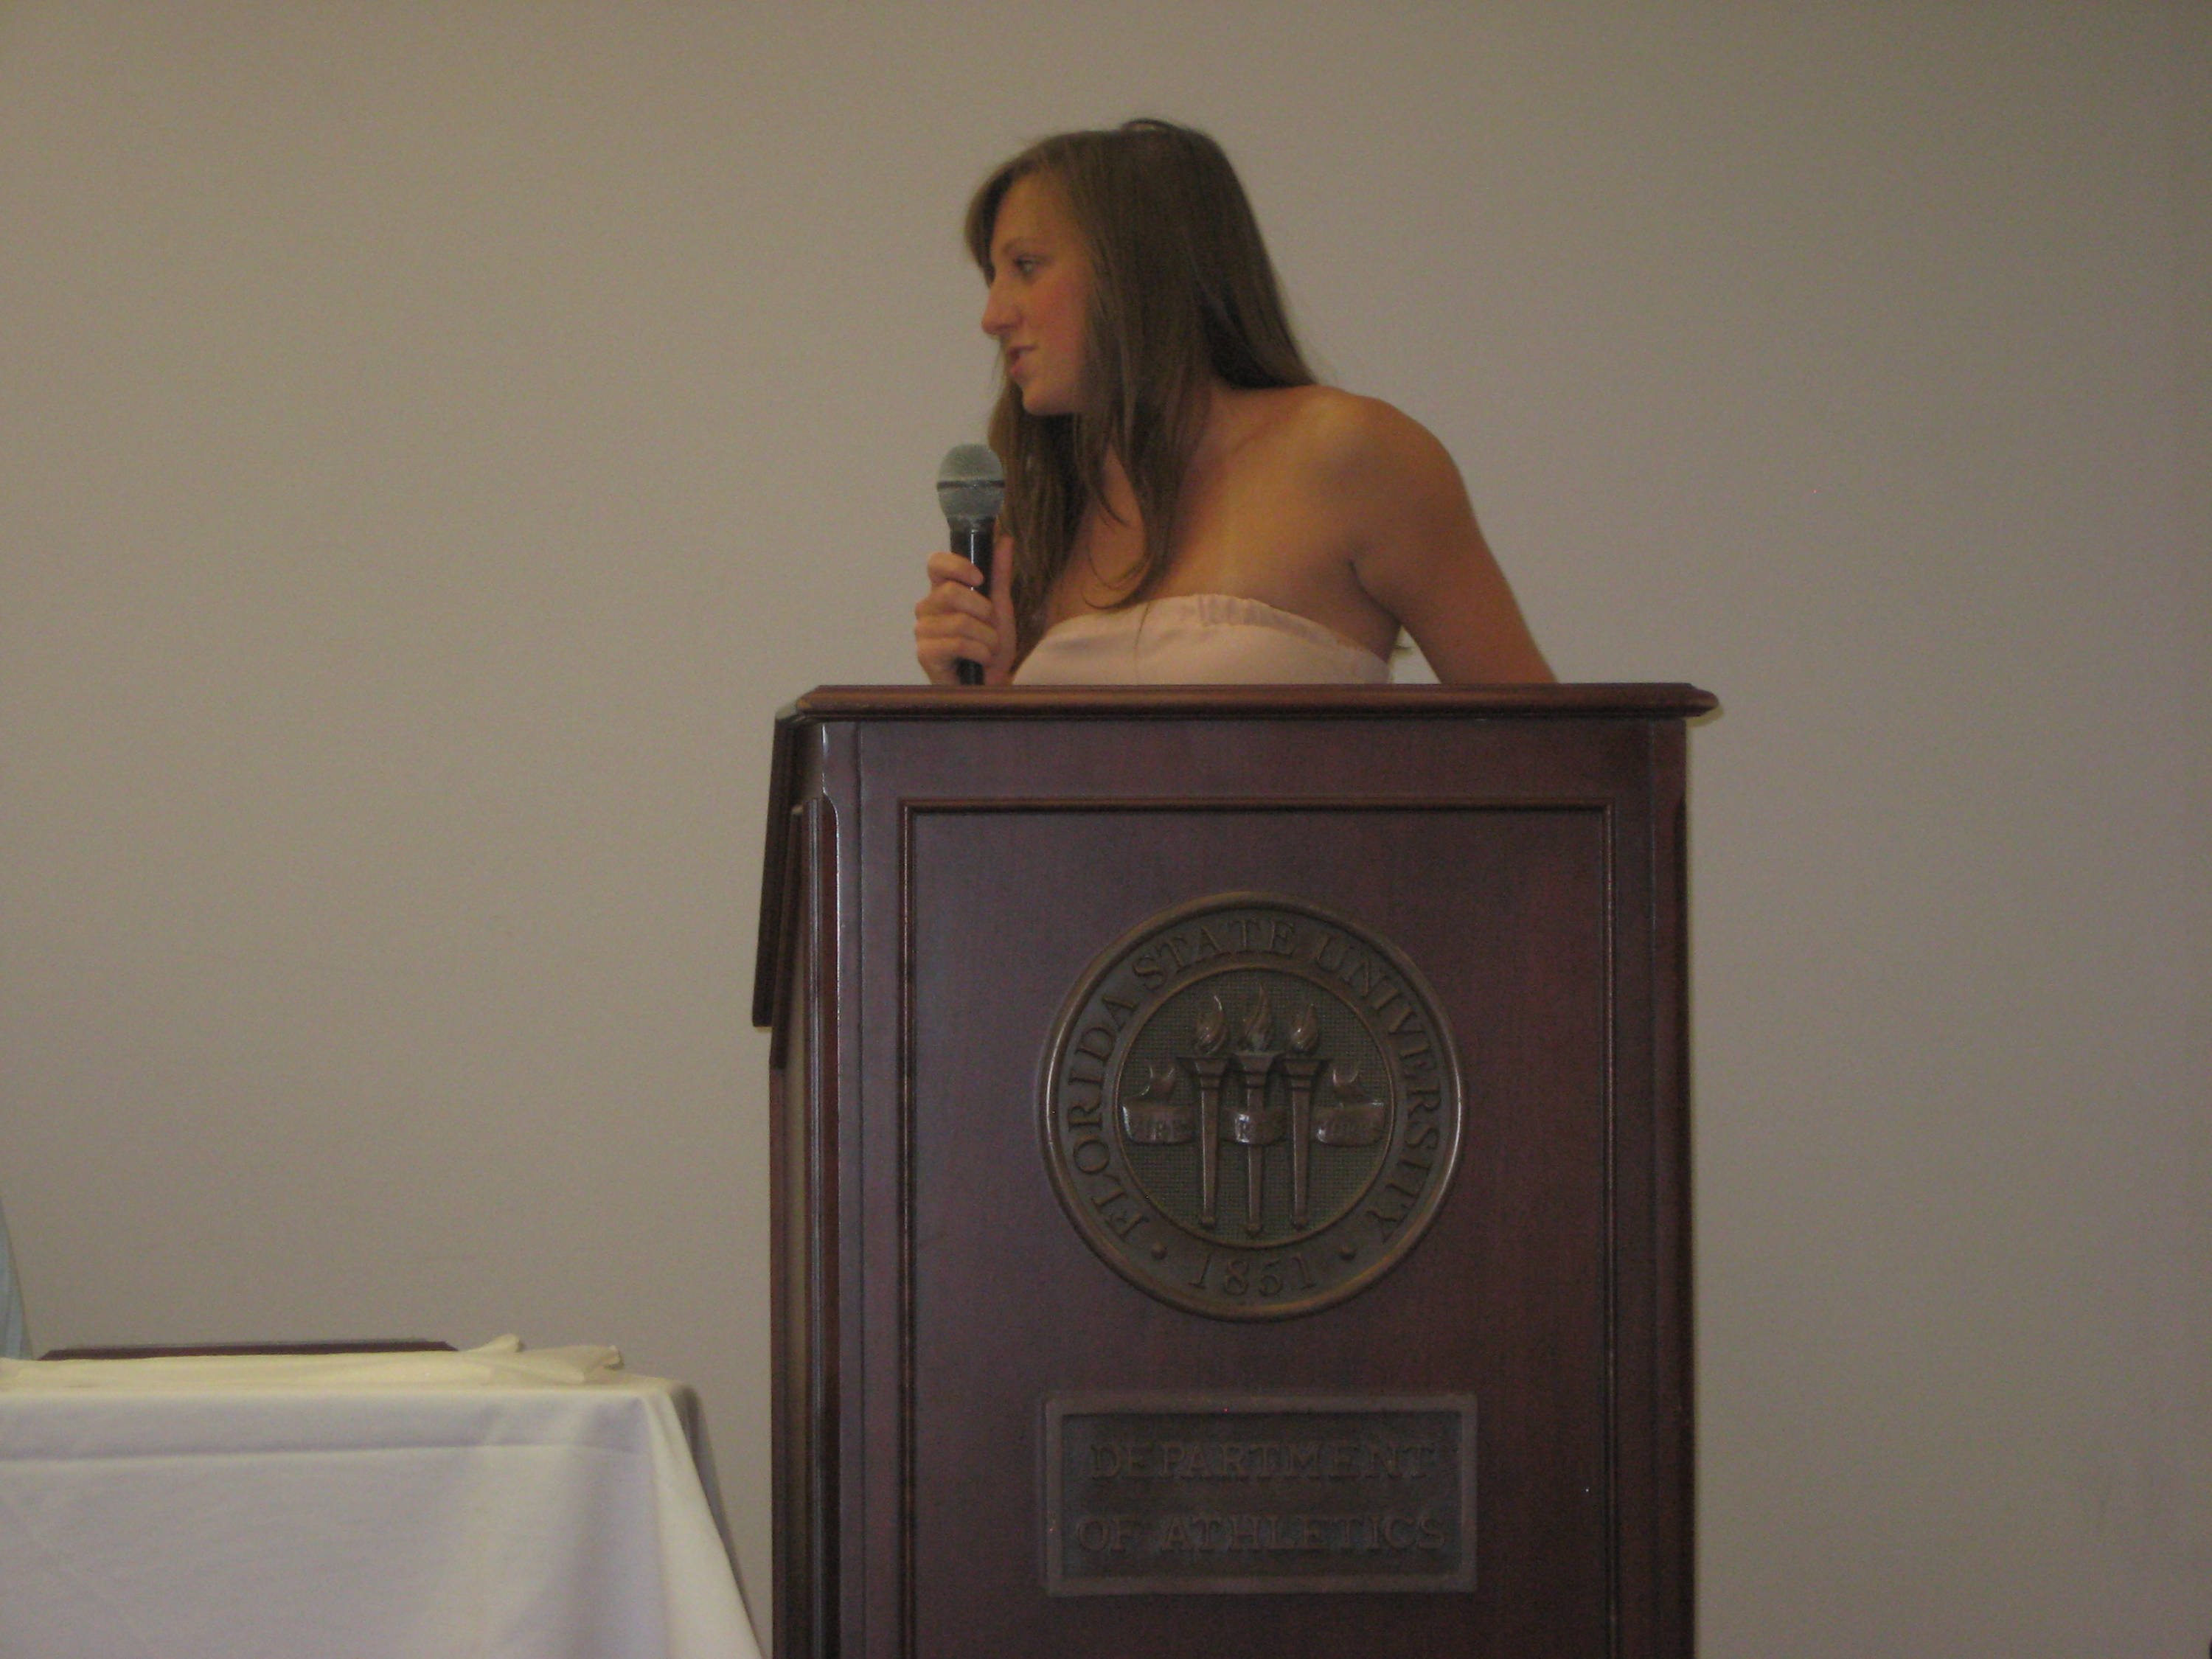 2011 Swimming and Diving Banquet: C.J. Hendry